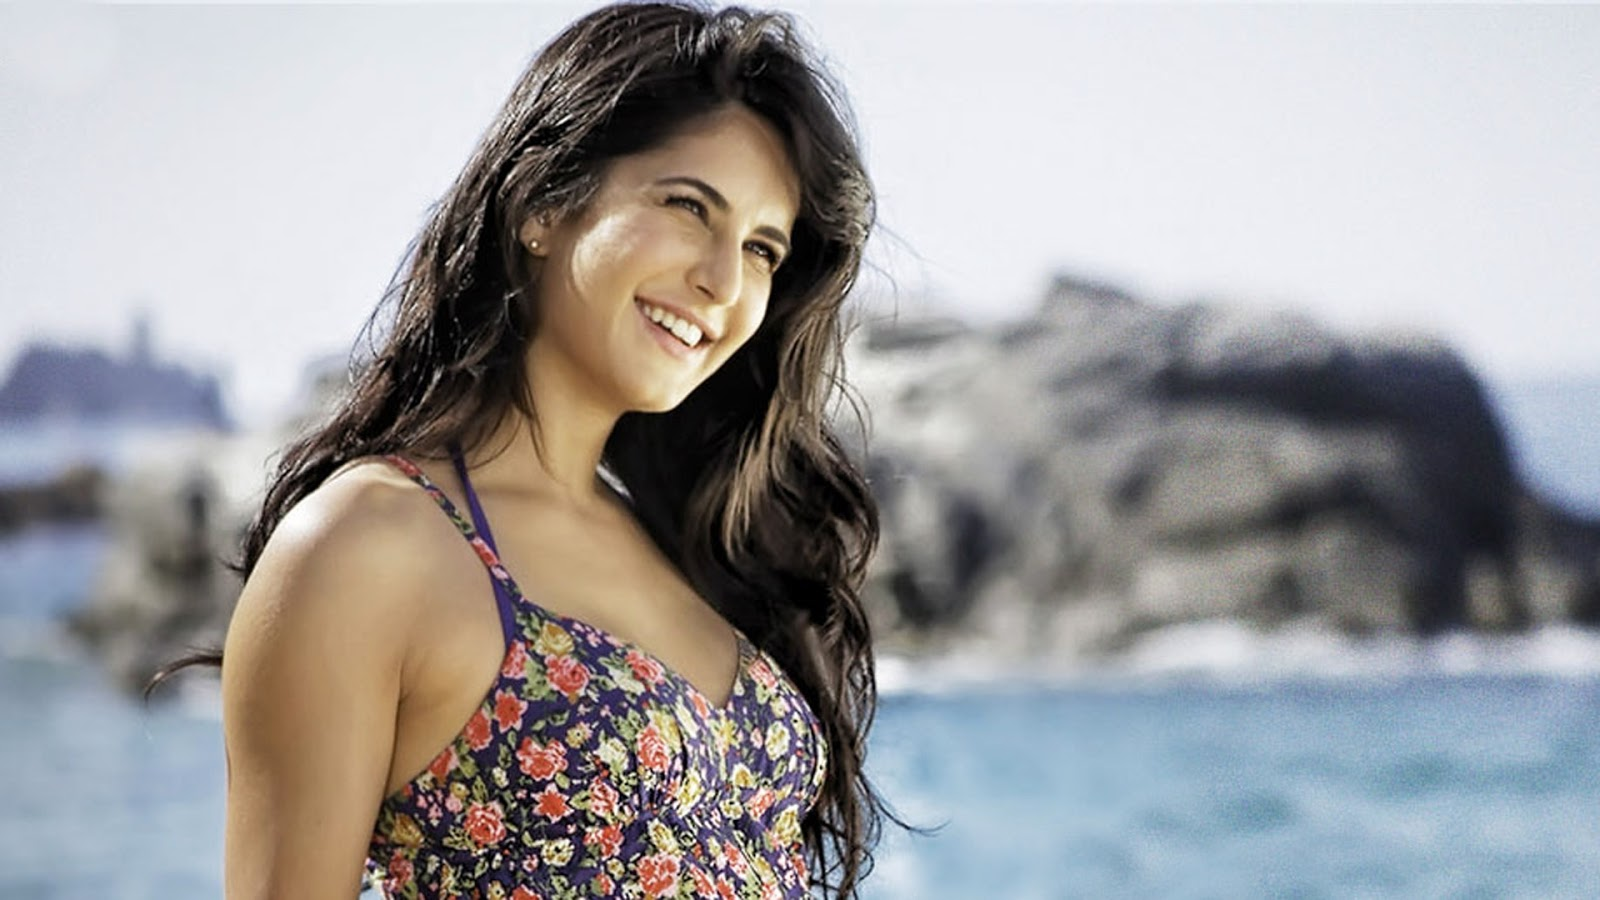 Katrina Kaif Hot Video Hd